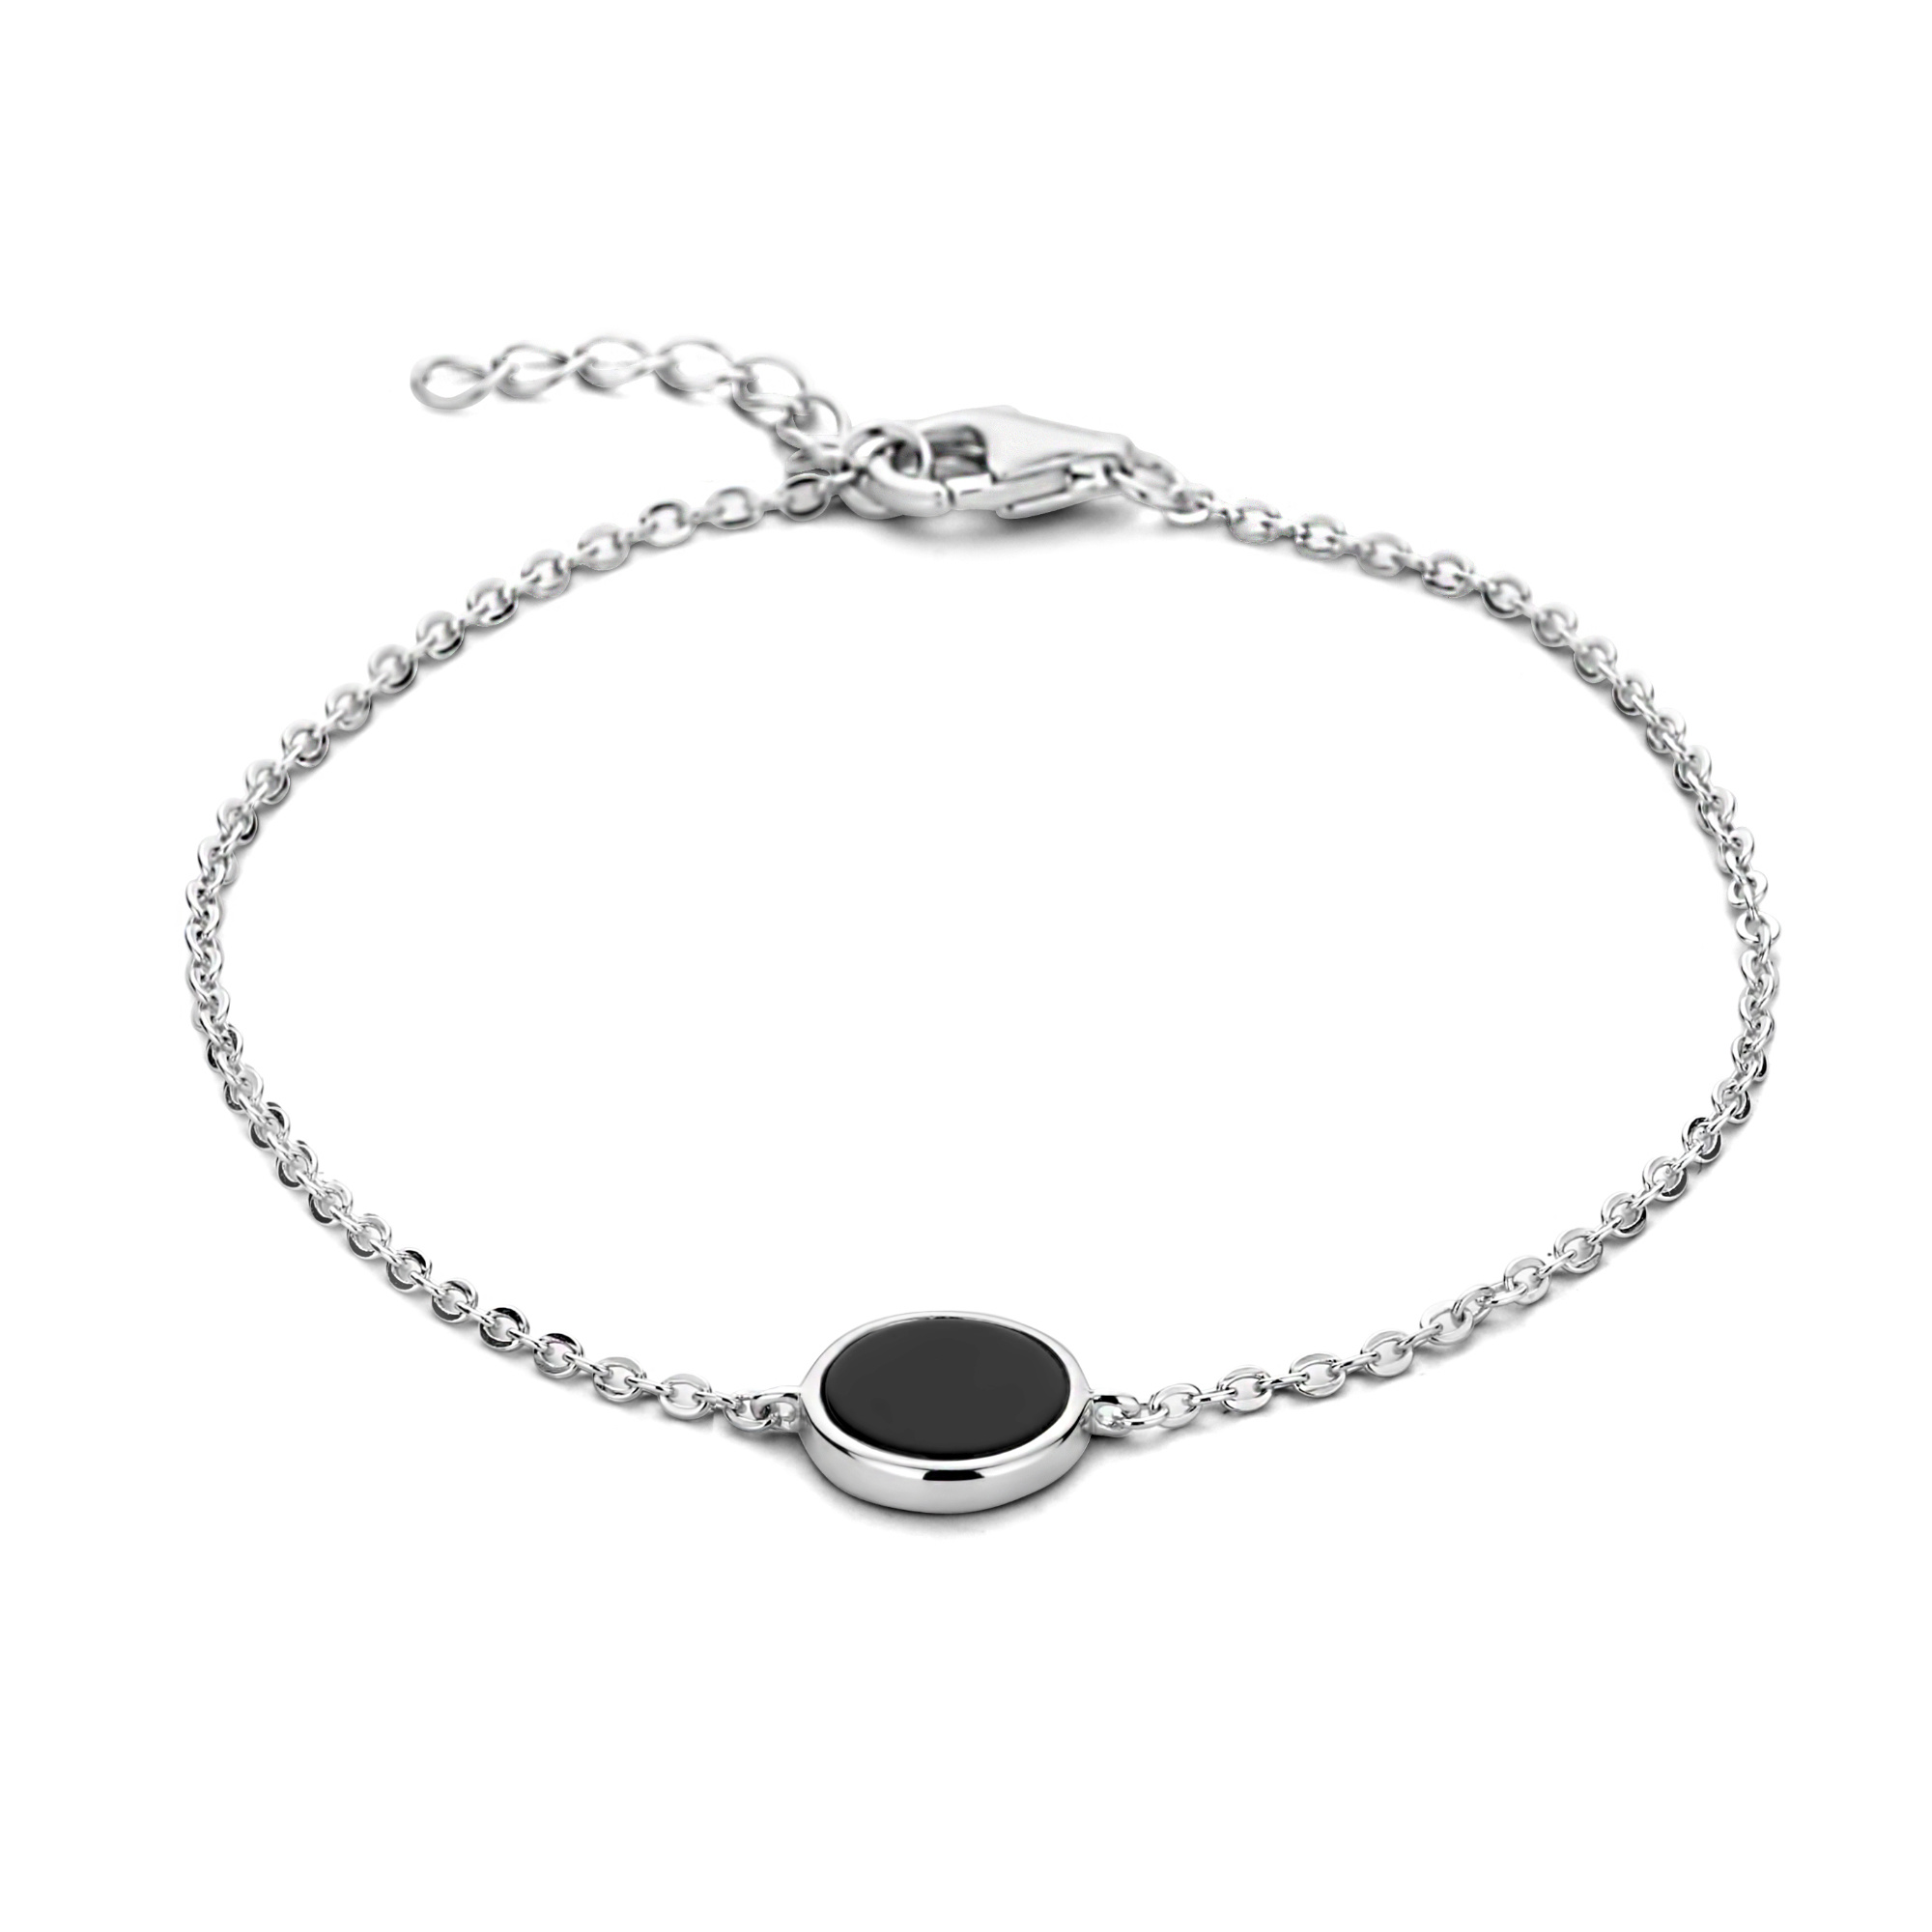 Selected Jewels Mila Sophie 925 sterling silver bracelet with black onyx